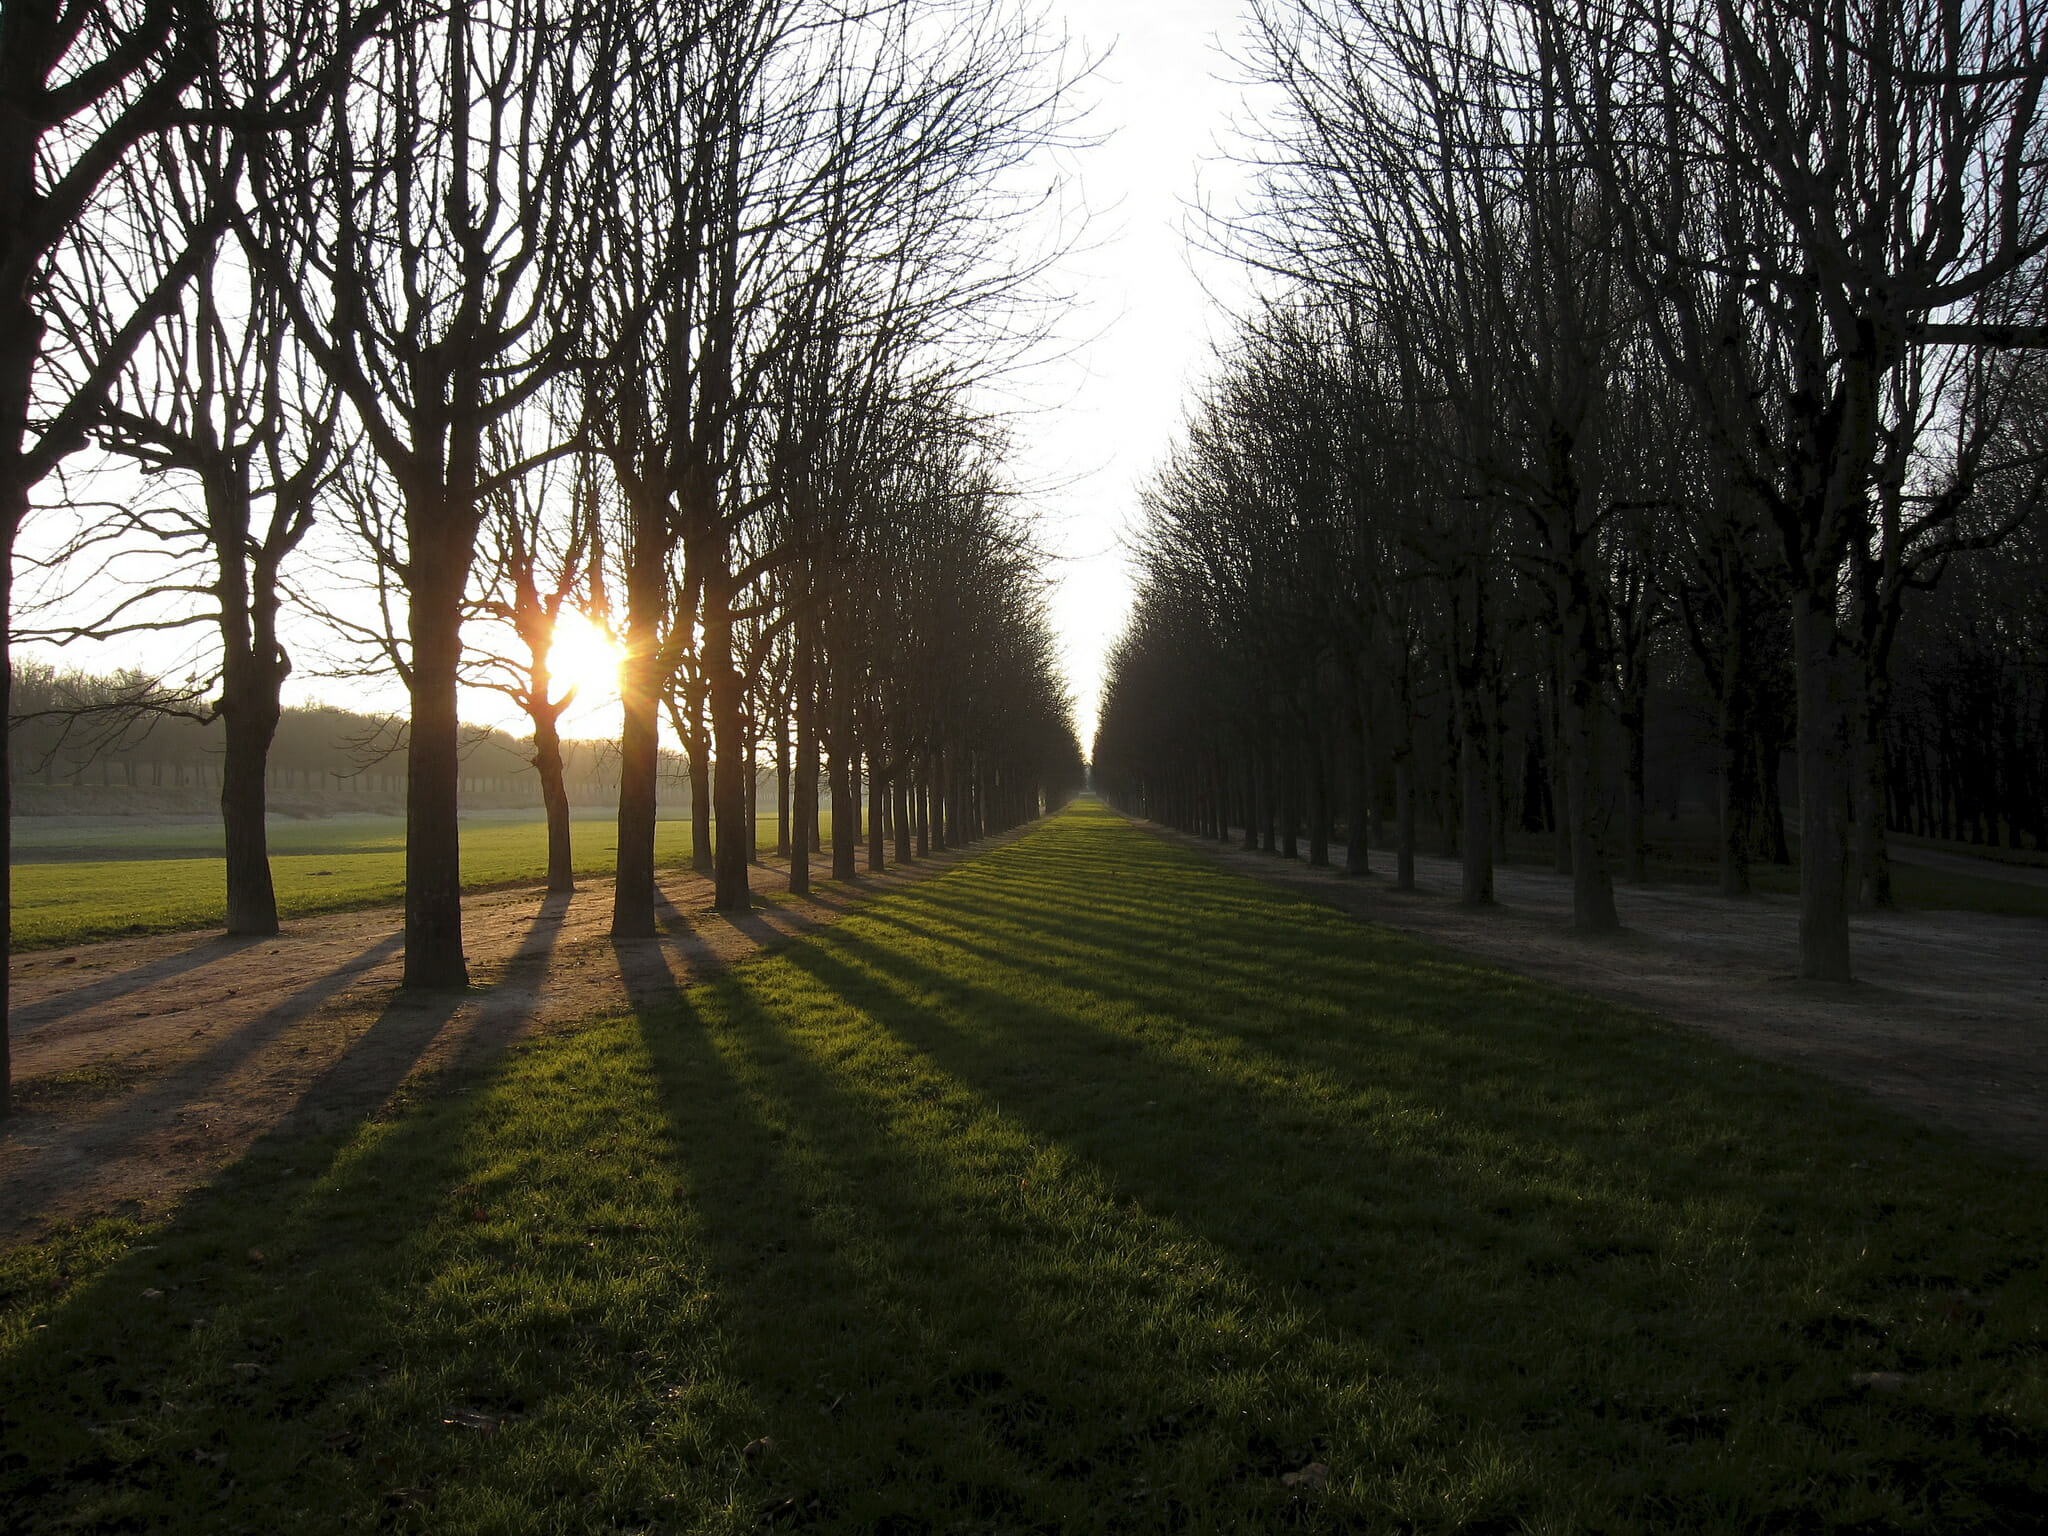 sunset among the trees on the grounds of Fontainebleau